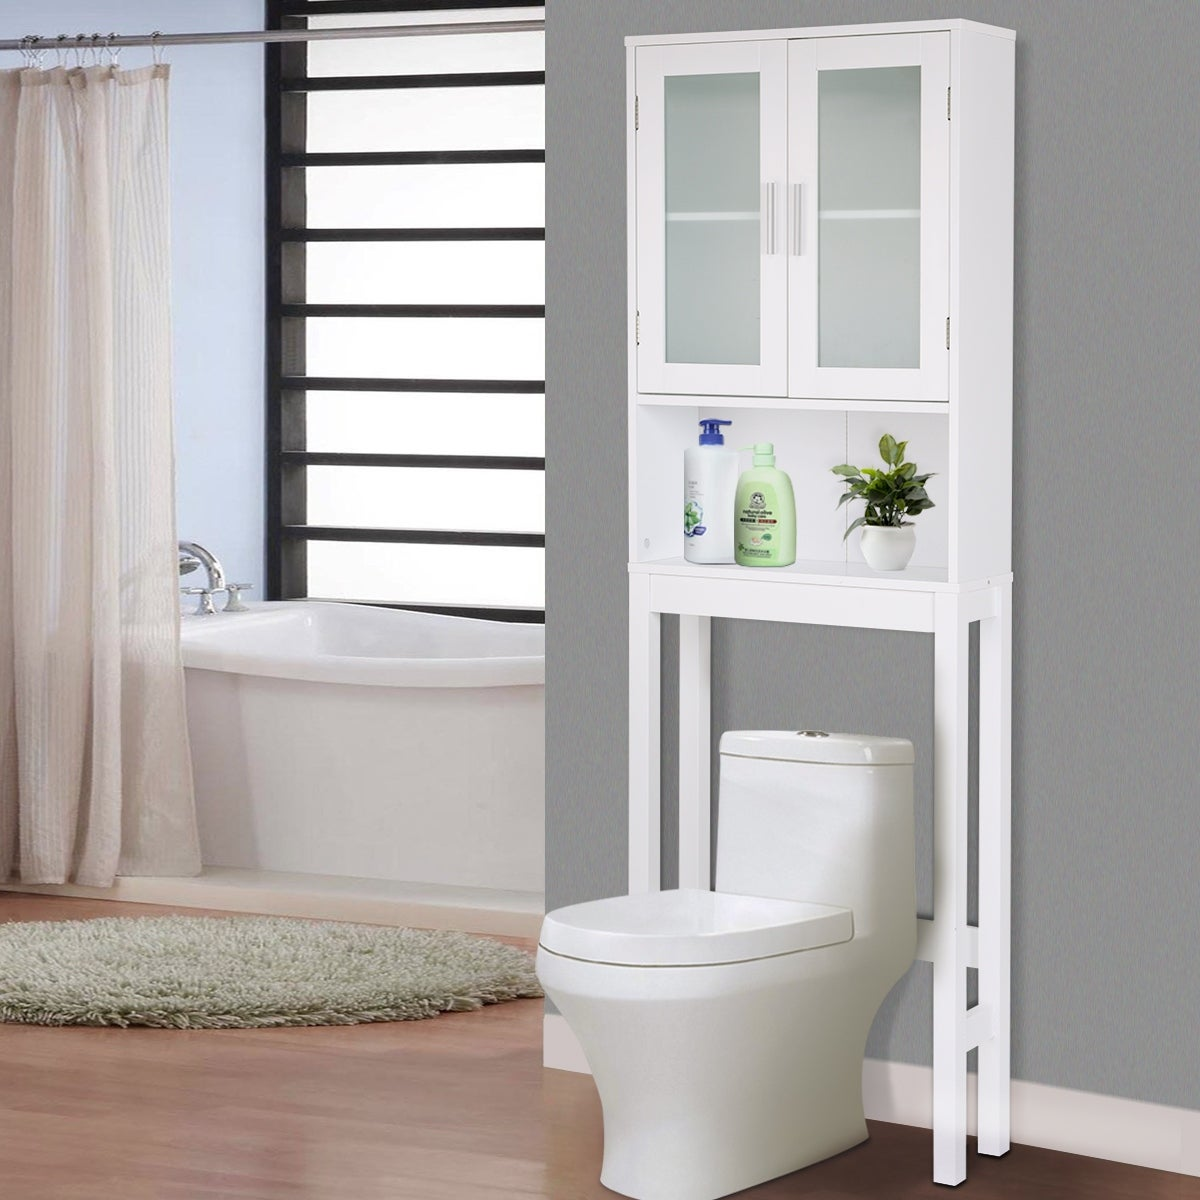 Buy Bathroom Cabinets U0026 Storage Online At Overstock.com | Our Best Bathroom  Furniture Deals